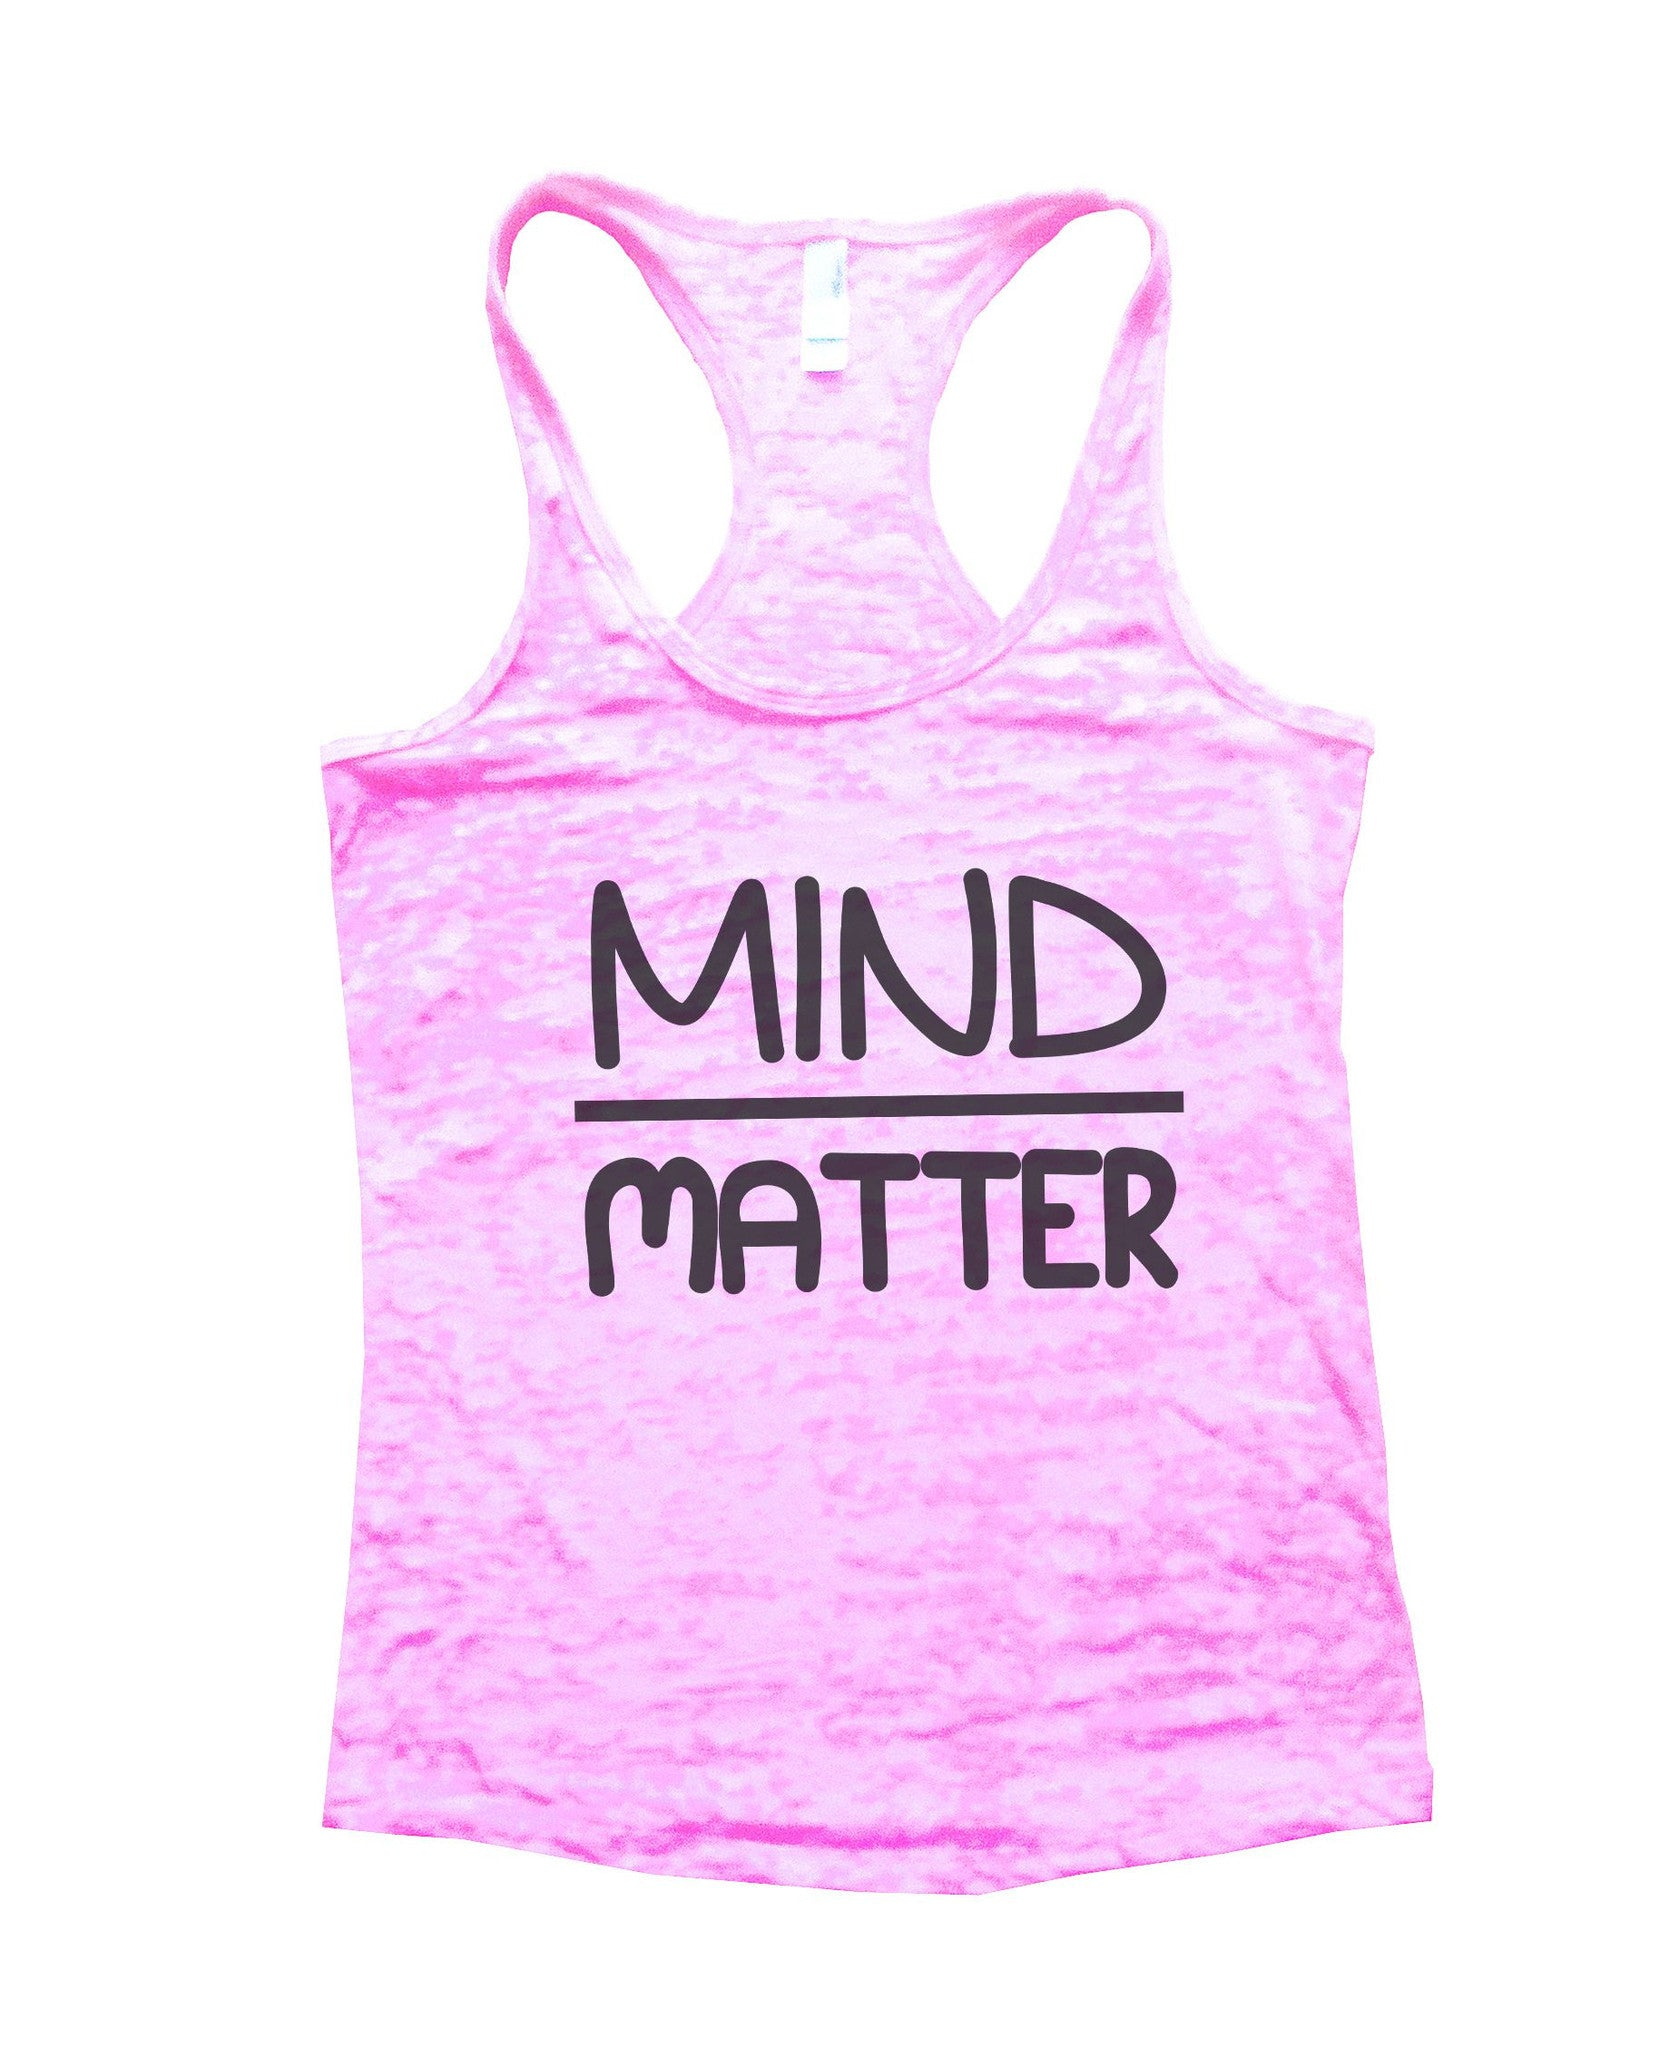 Mind Matter Burnout Tank Top By BurnoutTankTops.com - 655 - Funny Shirts Tank Tops Burnouts and Triblends  - 2